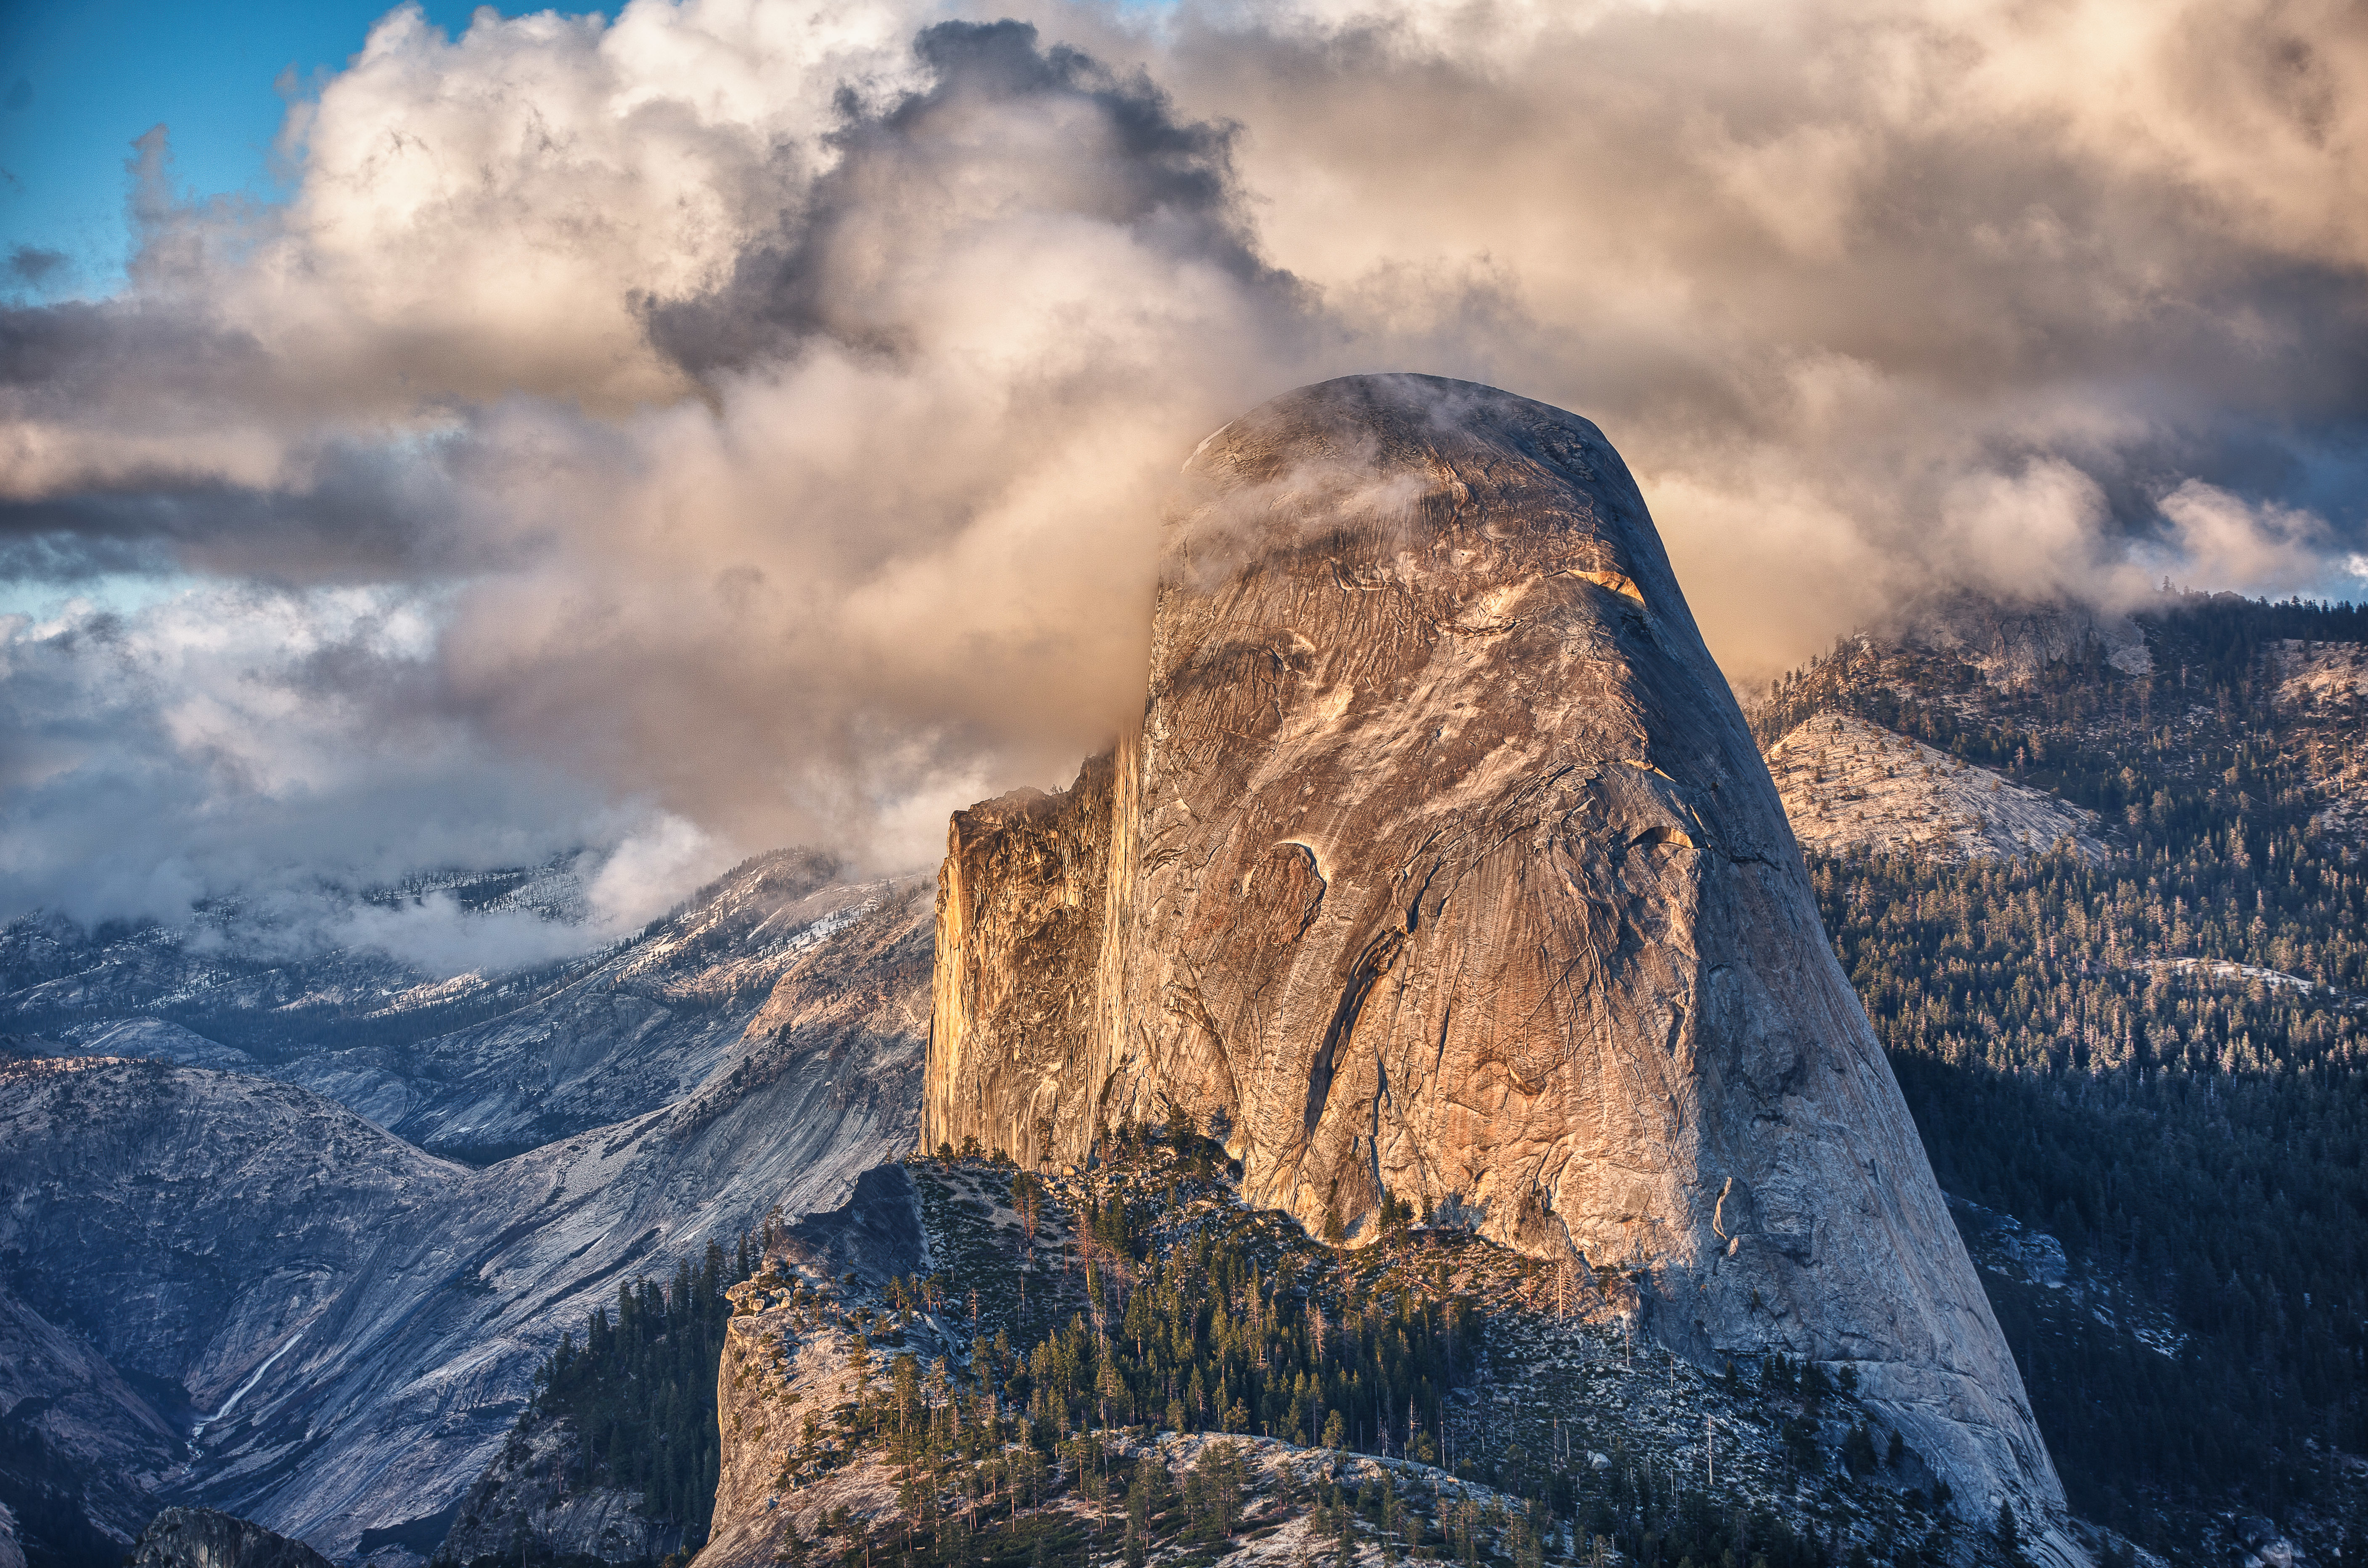 Yosemite National Park wallpaper 040